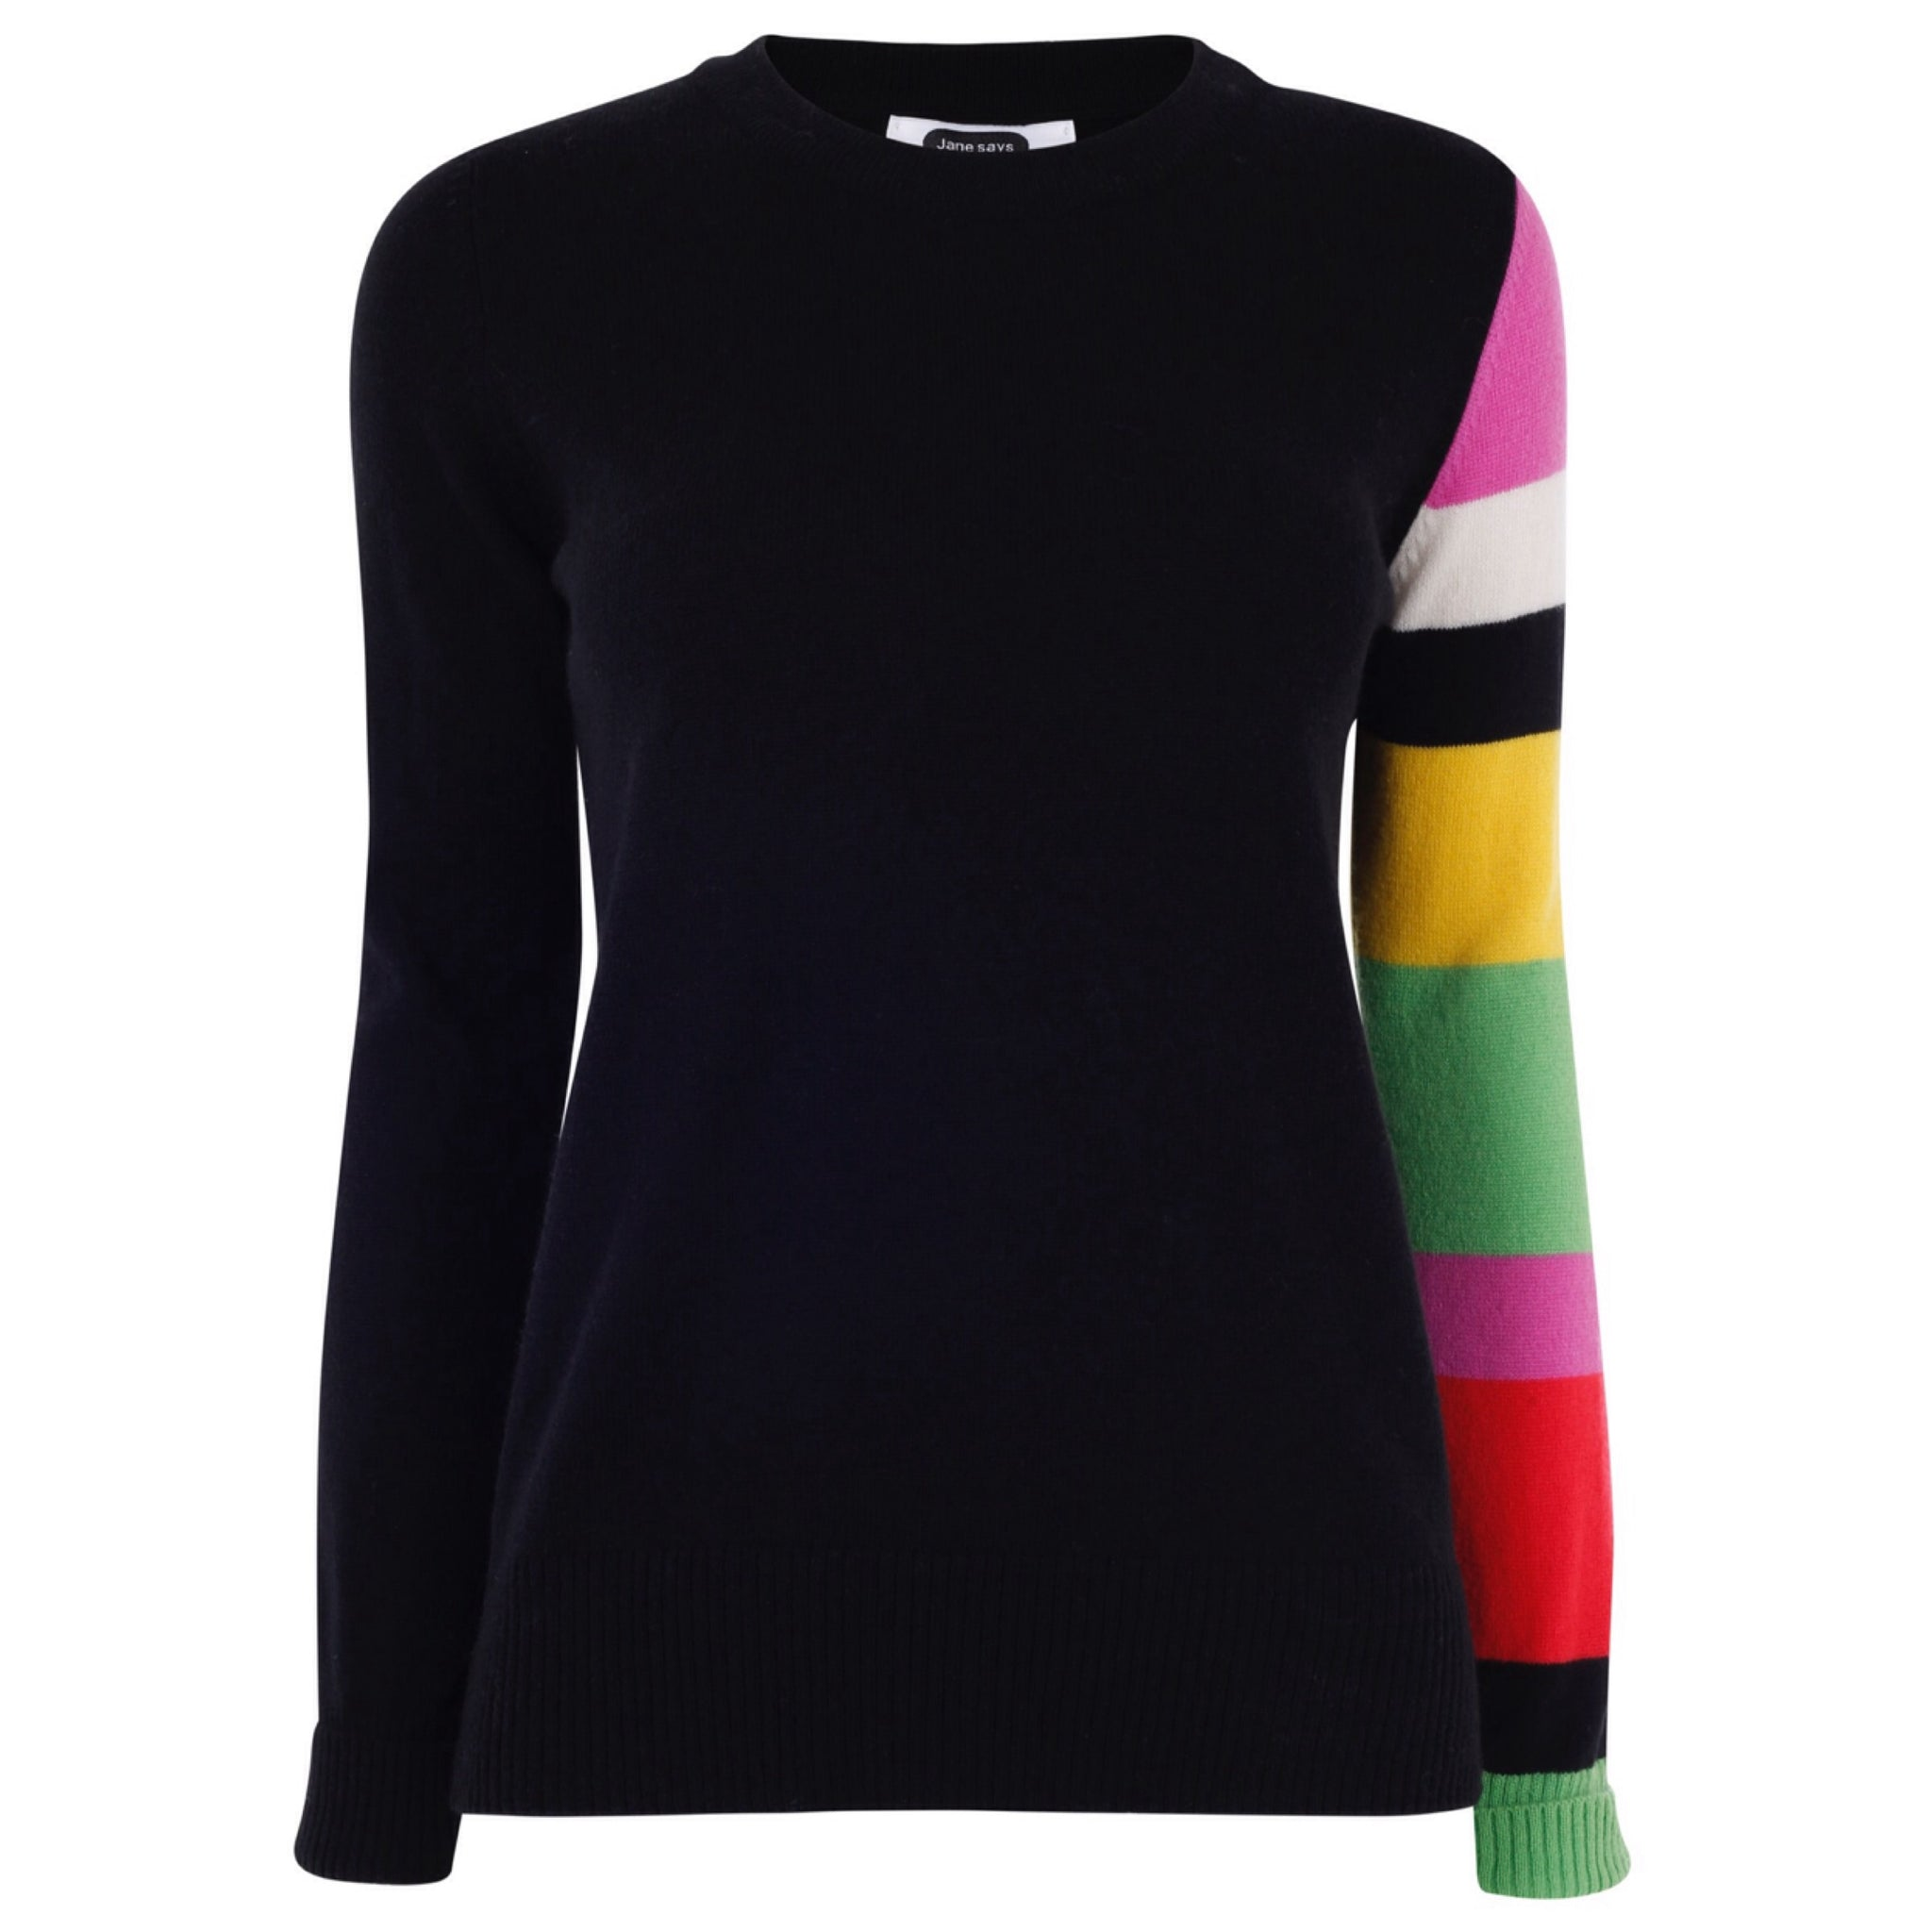 Colour Block Sleeve - Jet Black